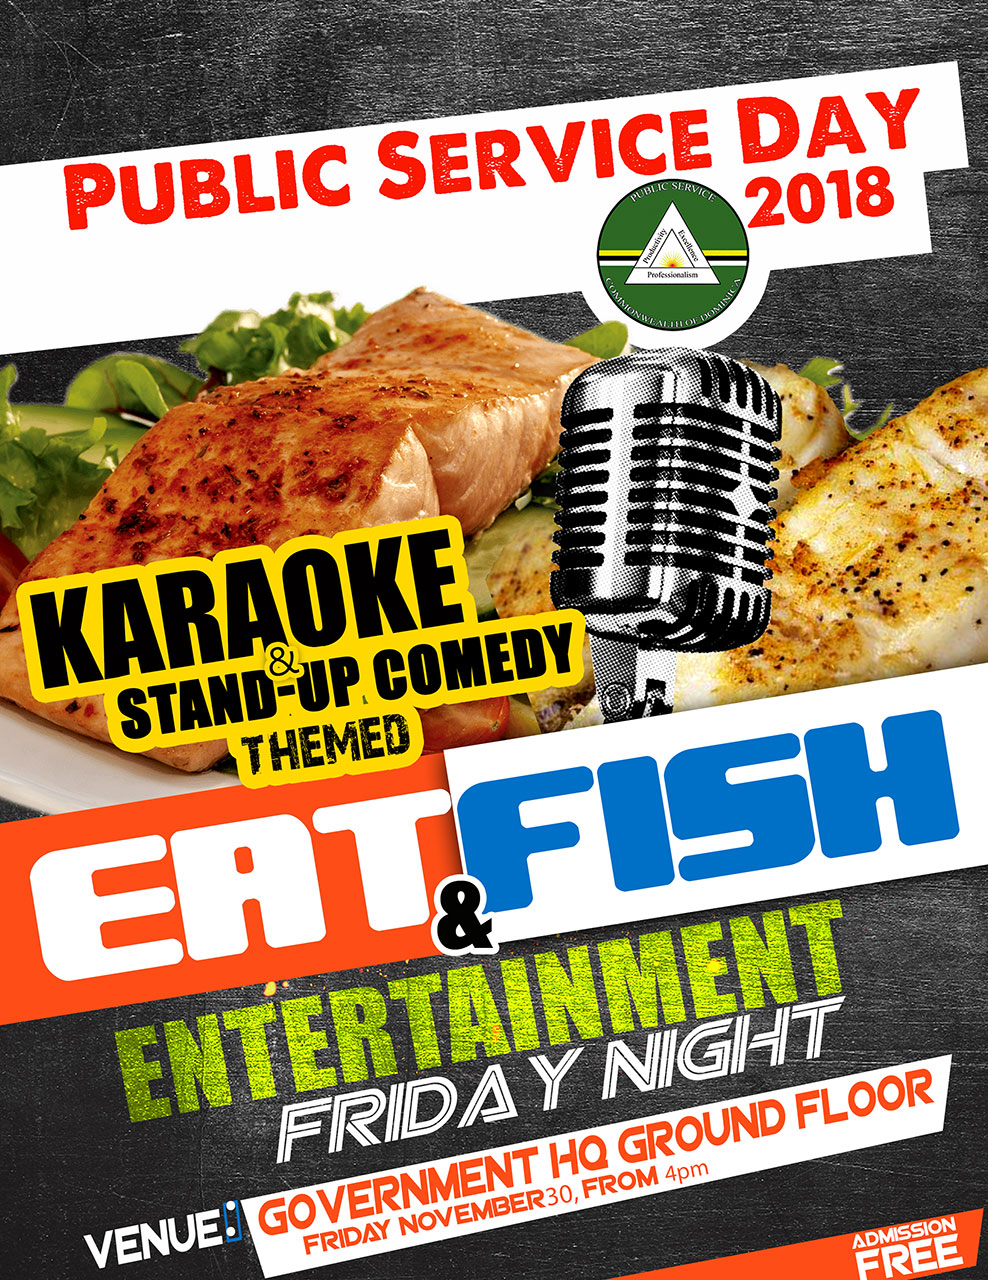 Eat Fish and Entertainment Night